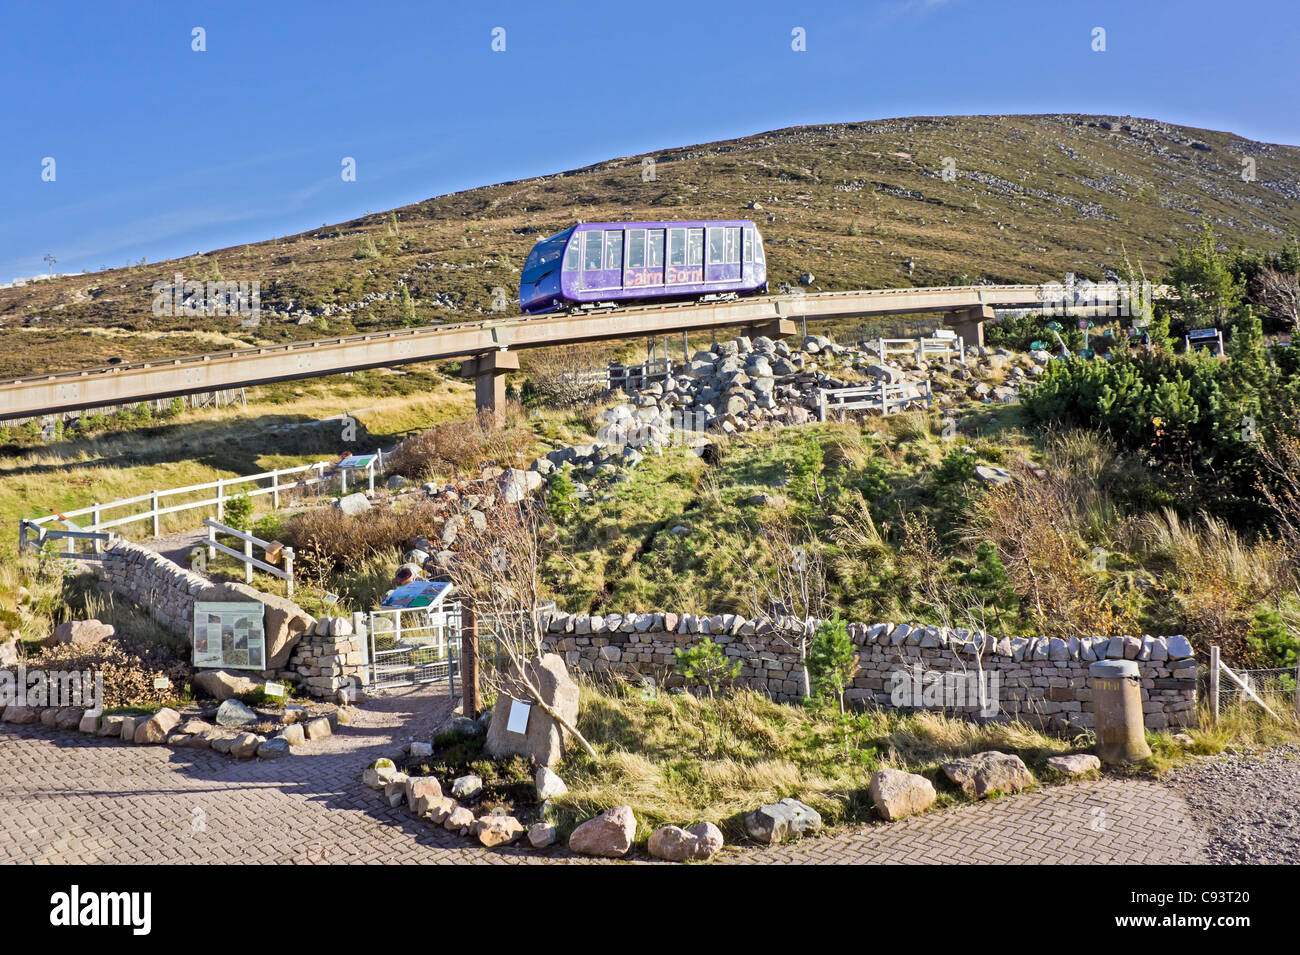 Cairngorm Mountain funicular installation on Cairn Gorm in Cairngorm National Park Scotland with funicular car descending. - Stock Image